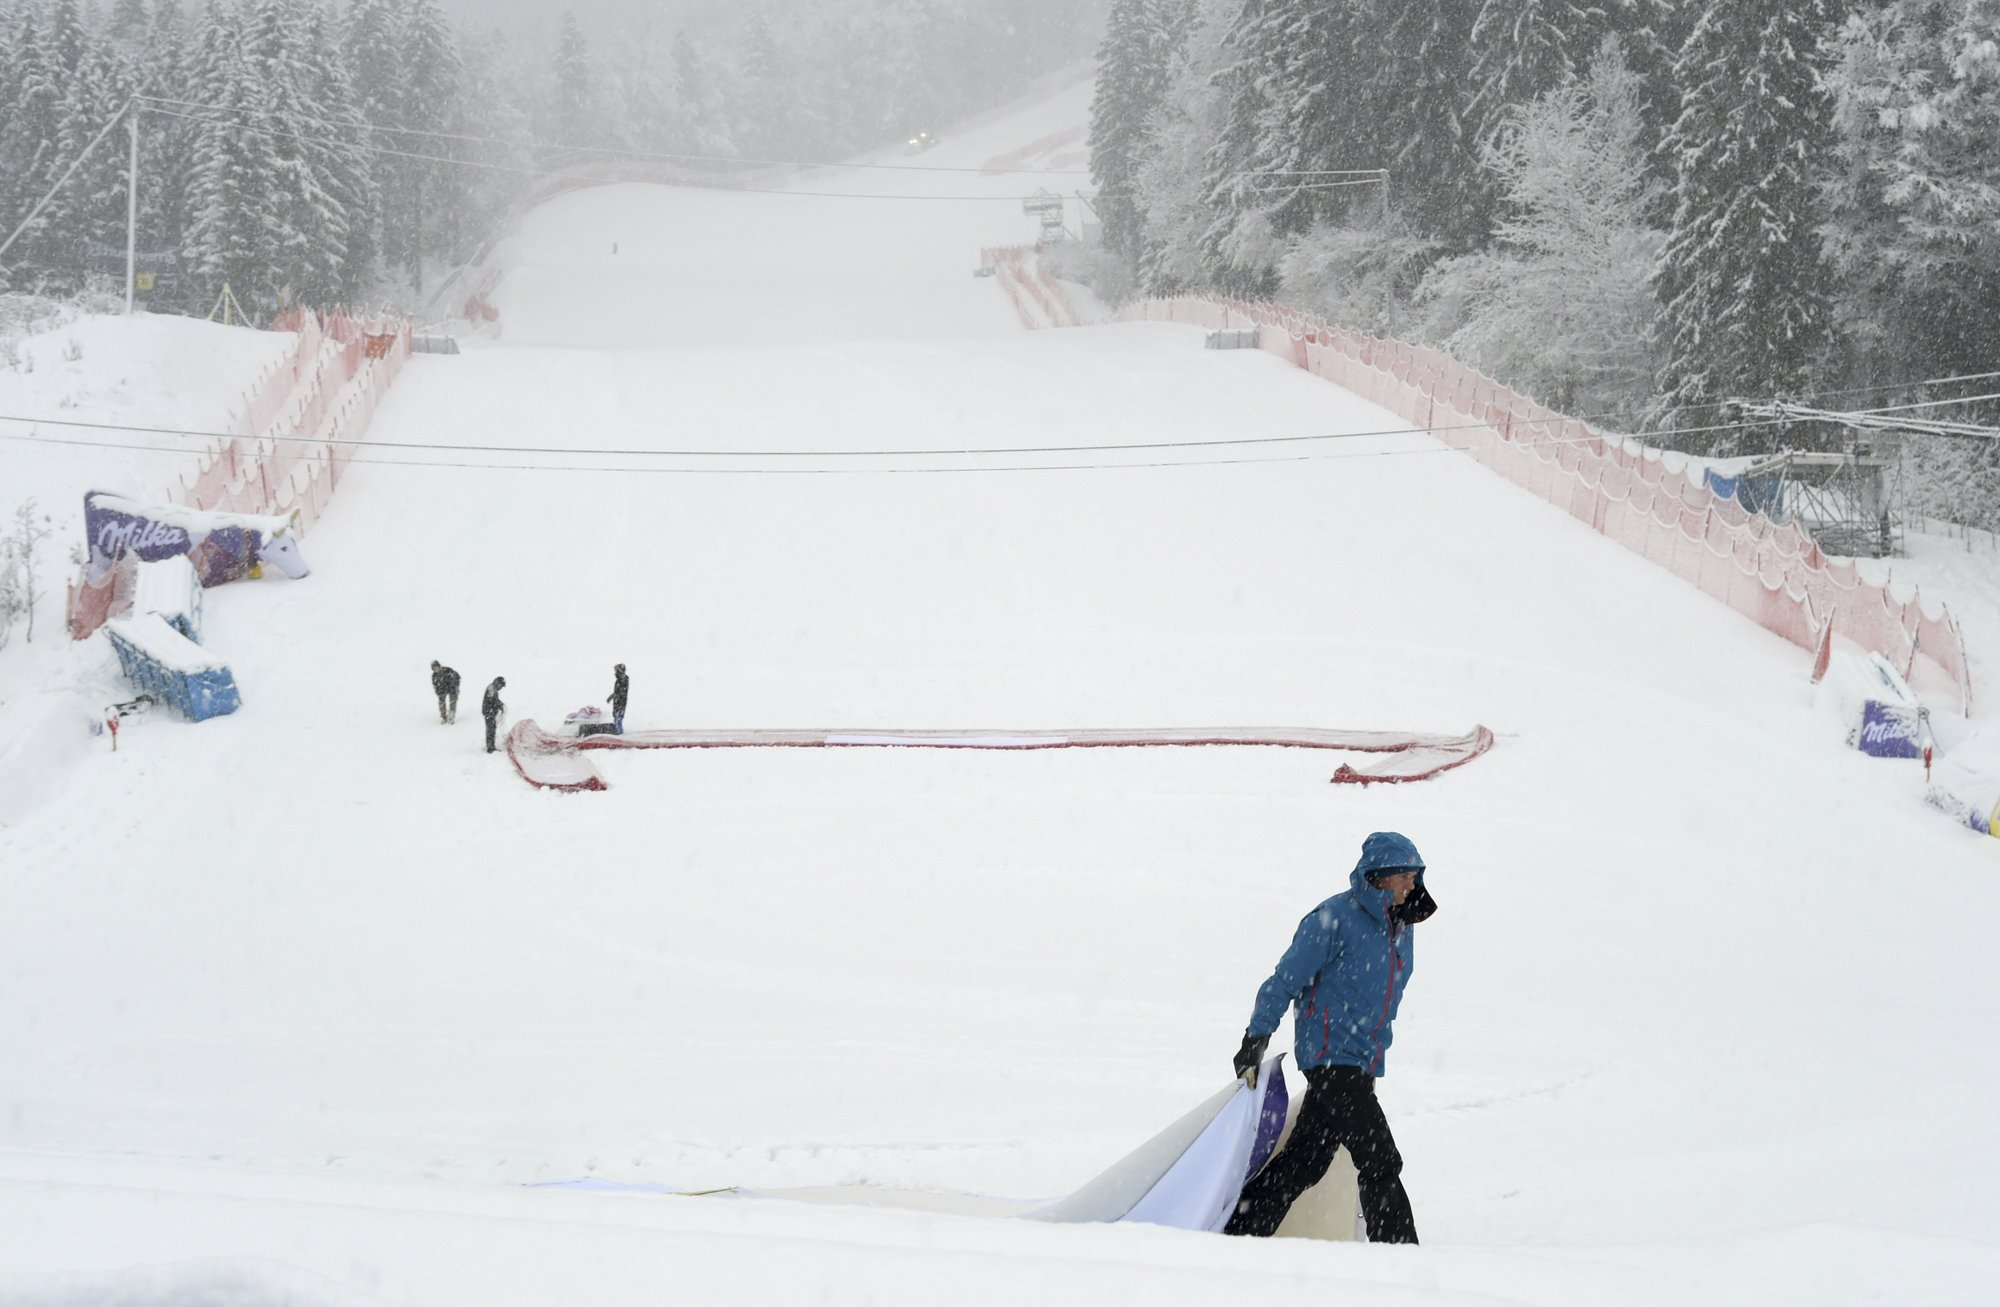 Heavy snow in Germany forces World Cup race to be cancelled_1549211504200.jpeg.jpg